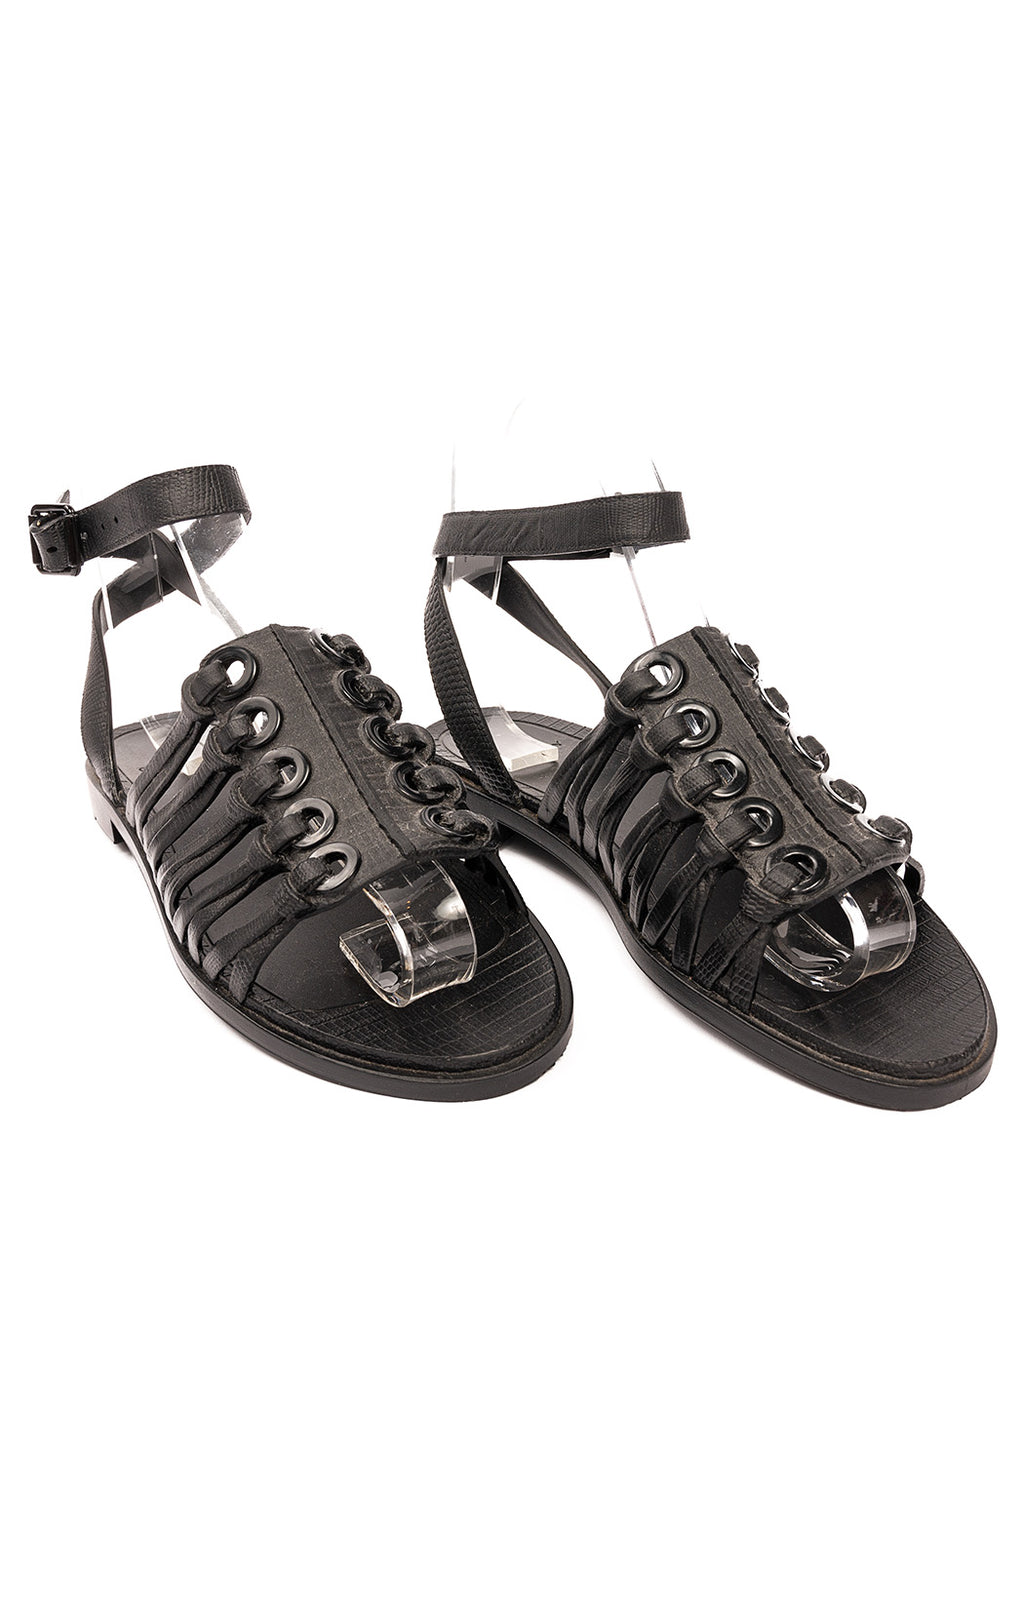 Black leather ankle strap open toe flat sandals